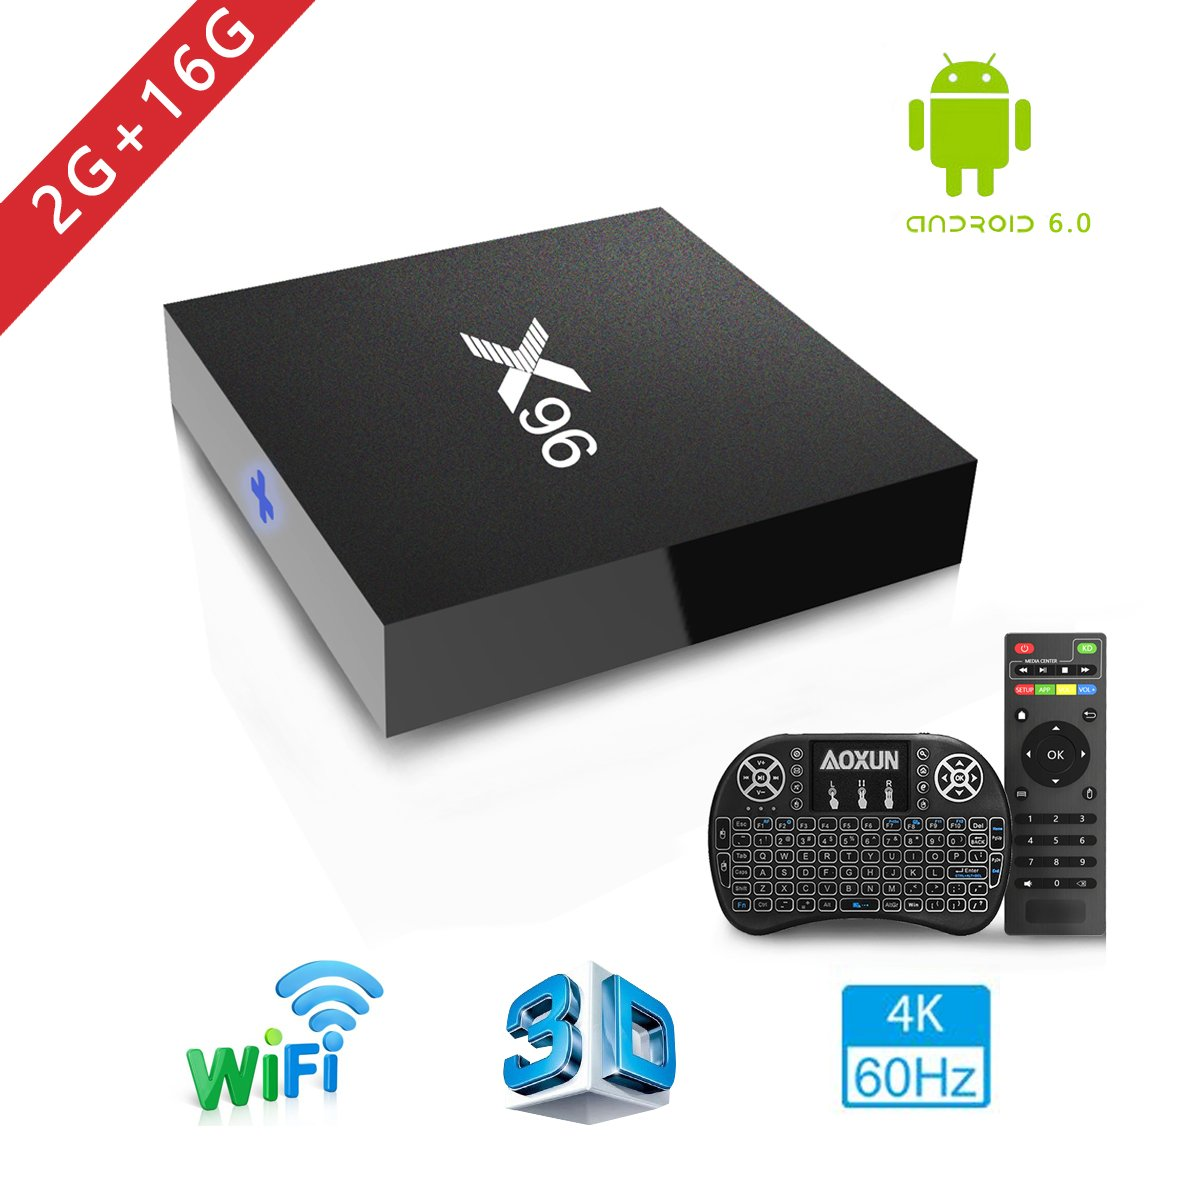 Android TV Box - Smart TV Box with Quad Core X96 Android 6.0 TV Box Amlogic S905 2G RAM 16GB ROM H.265 64 Bit WiFi By Aoxun [2018 Version] …